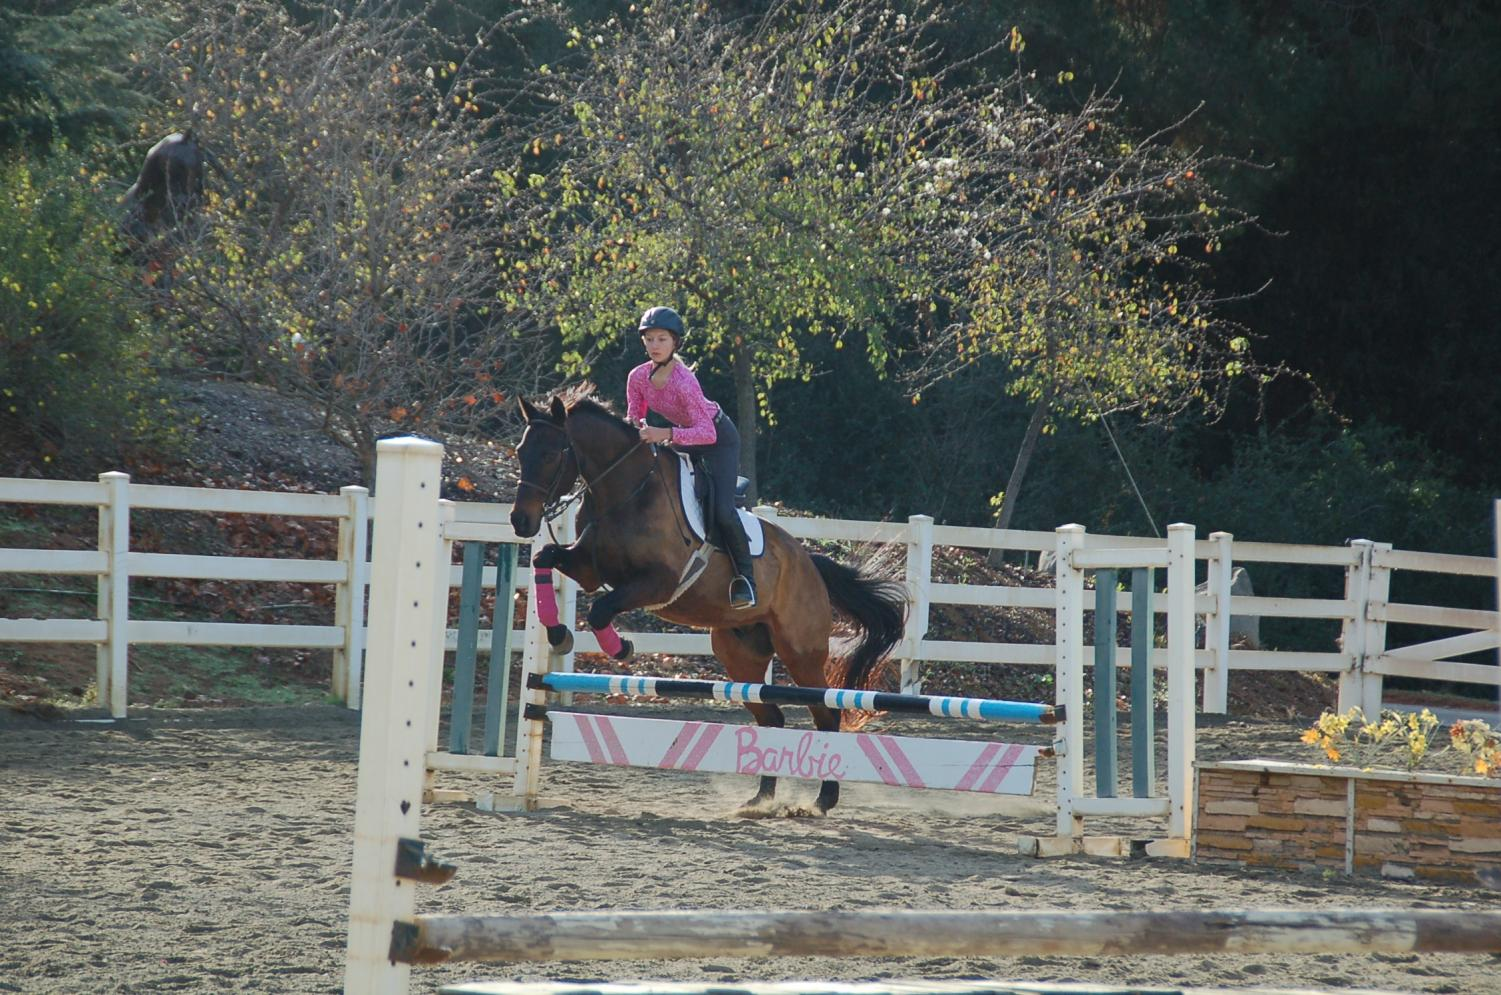 Freshman, Sophia Vansyke during her weekly practice with her favored horse: Brighton. On many occasion Sophia works on her jumping technique with her many horses and sometimes takes to the trails for a hiking experience with her friends.